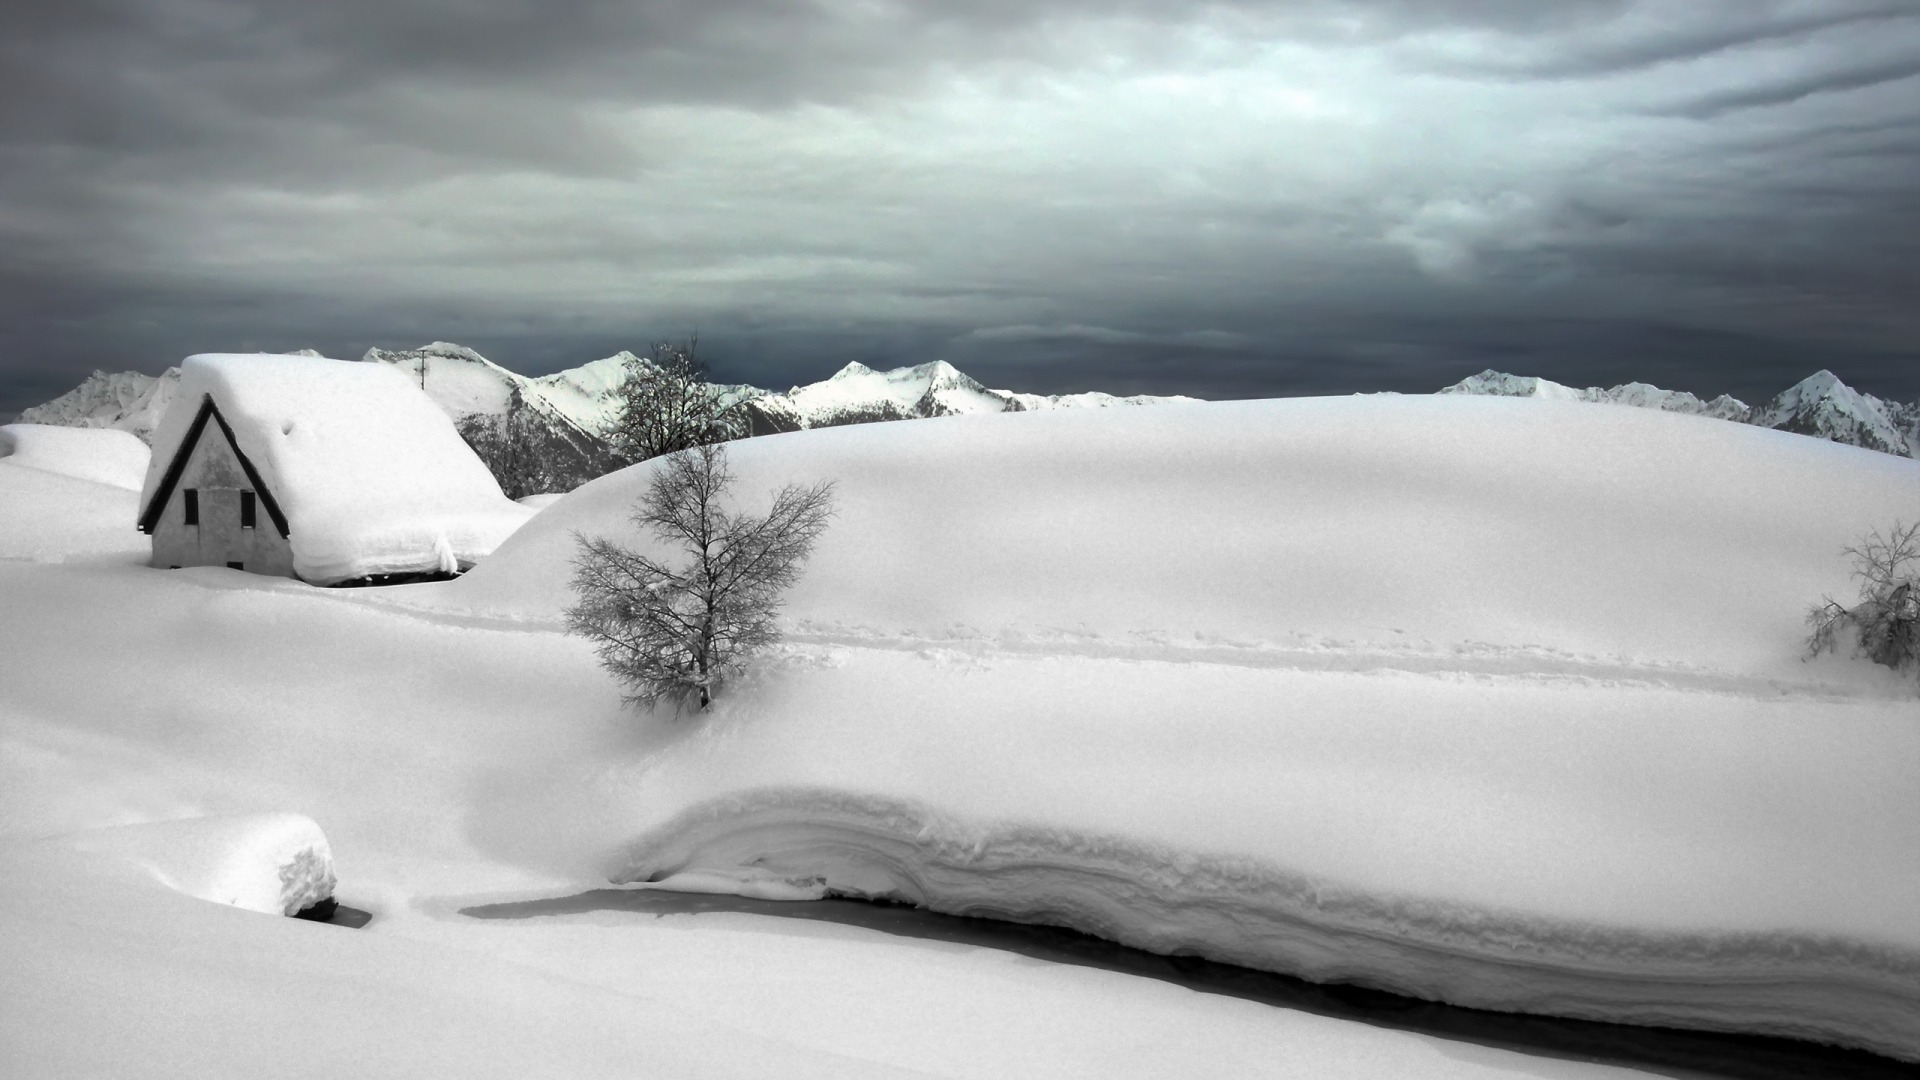 Download-winter-snow-landscape-house-river-section-Resolution-1920x1080-wallpaper-wp3605137